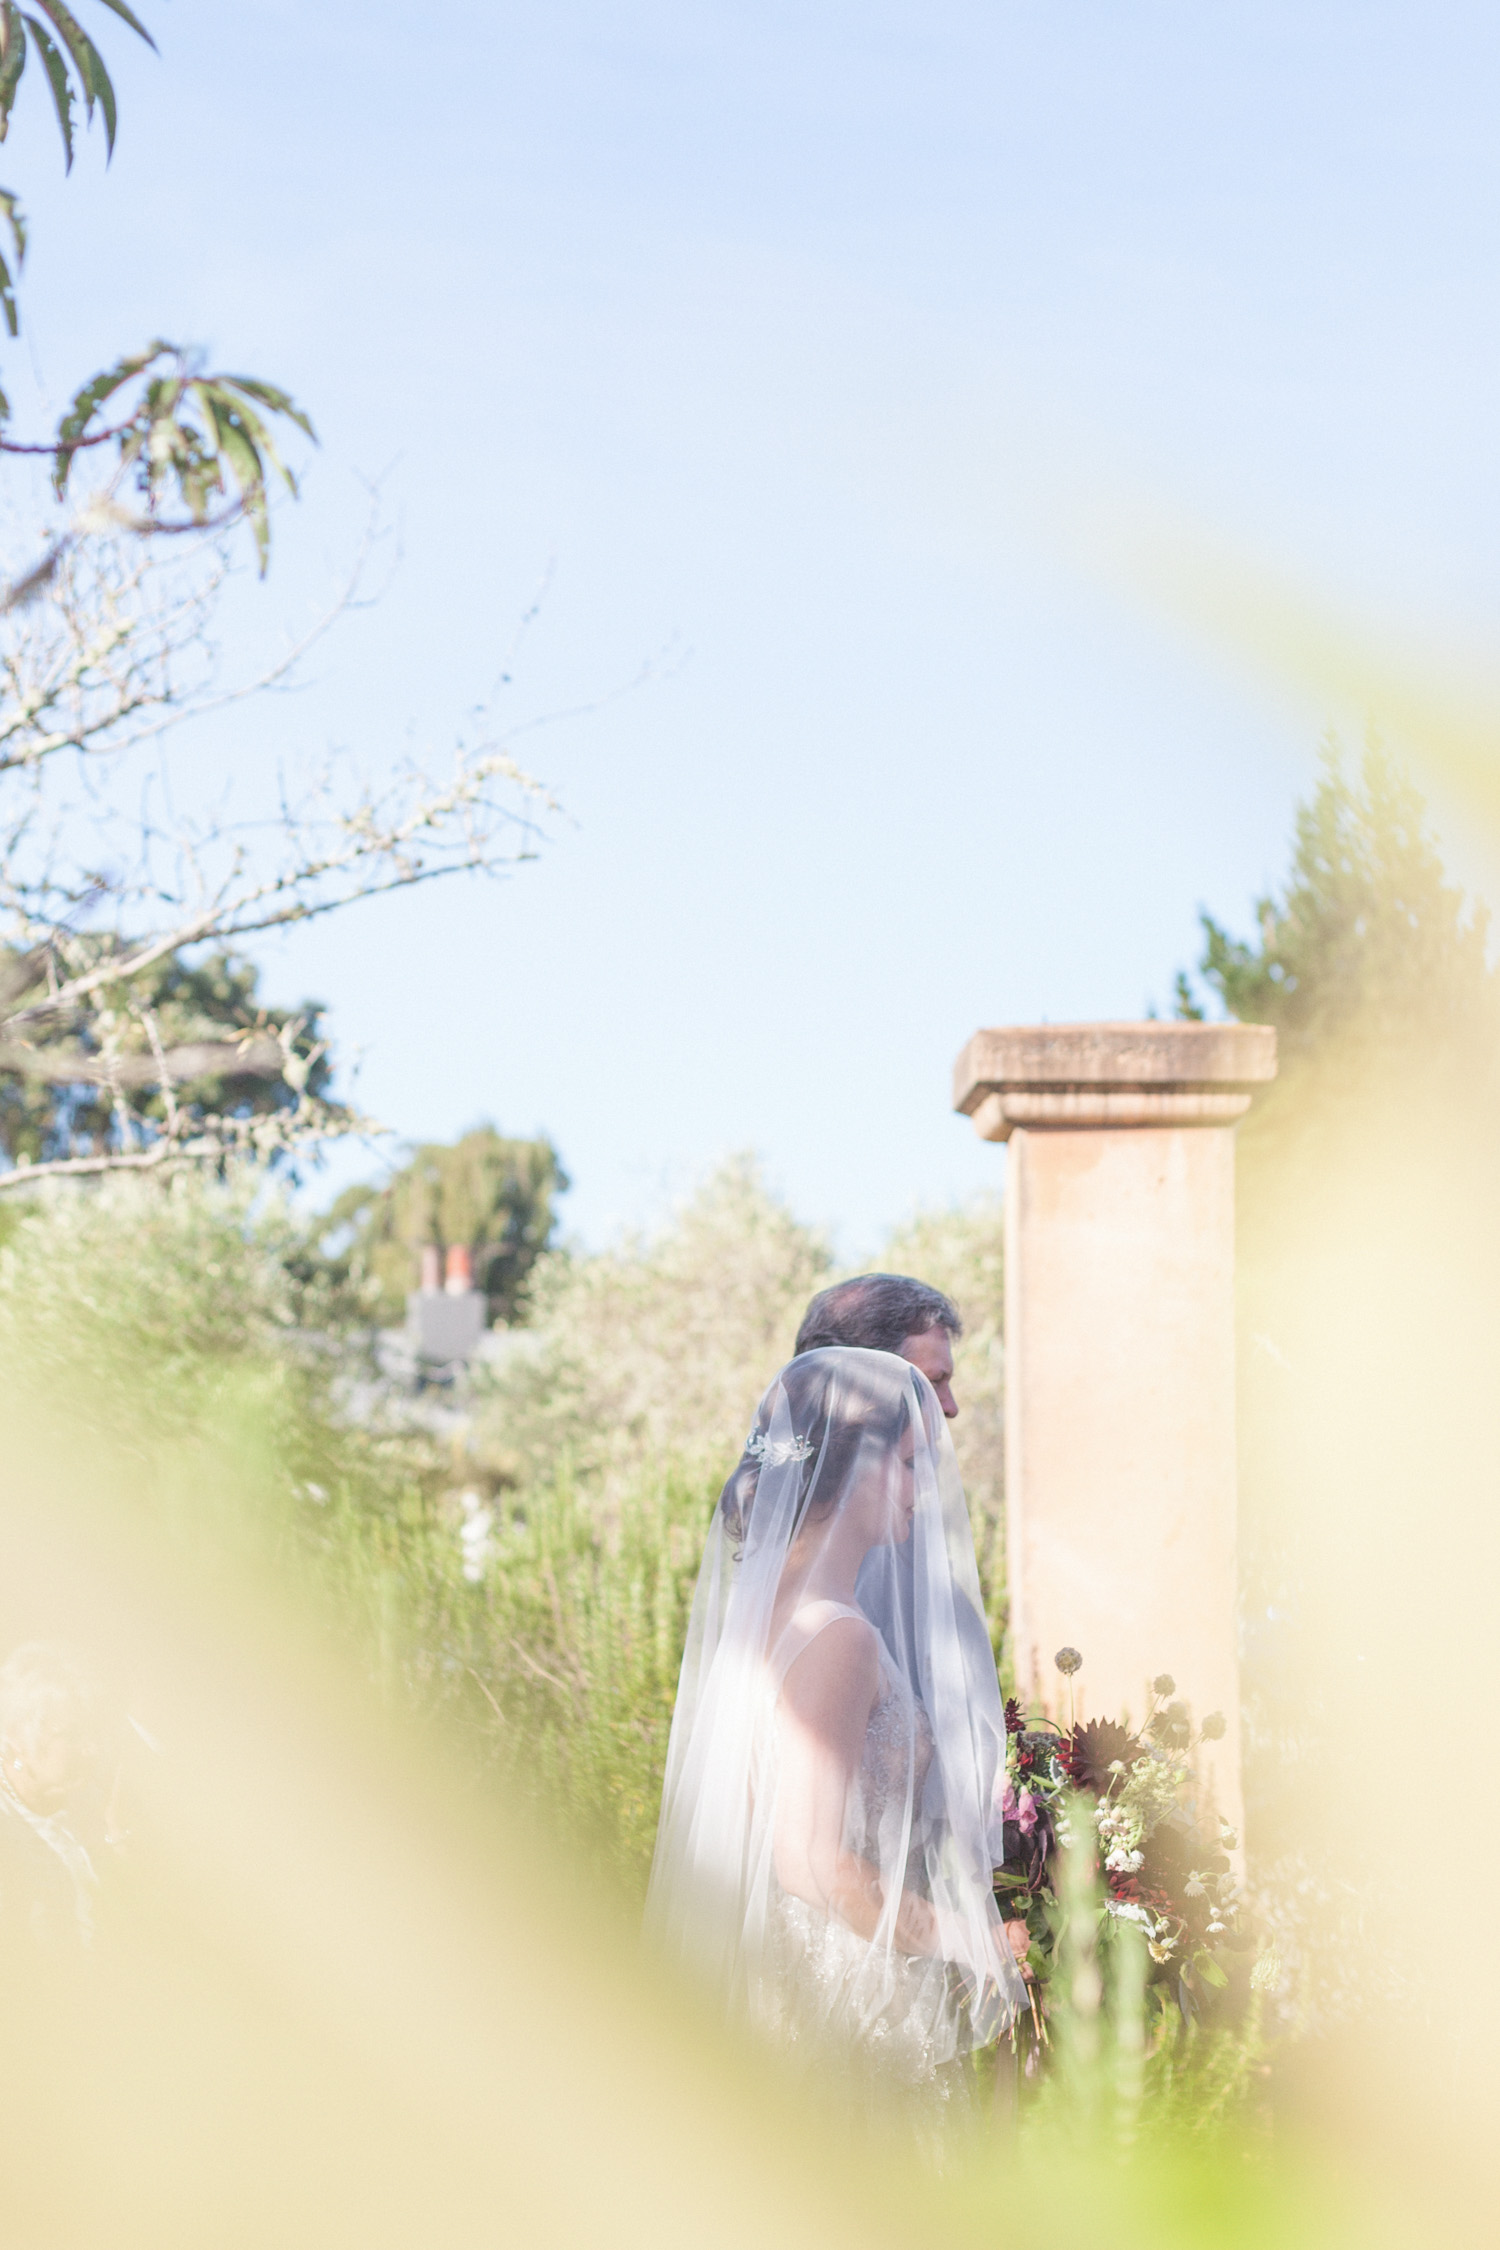 Bride wearing a gorgeous wedding veil